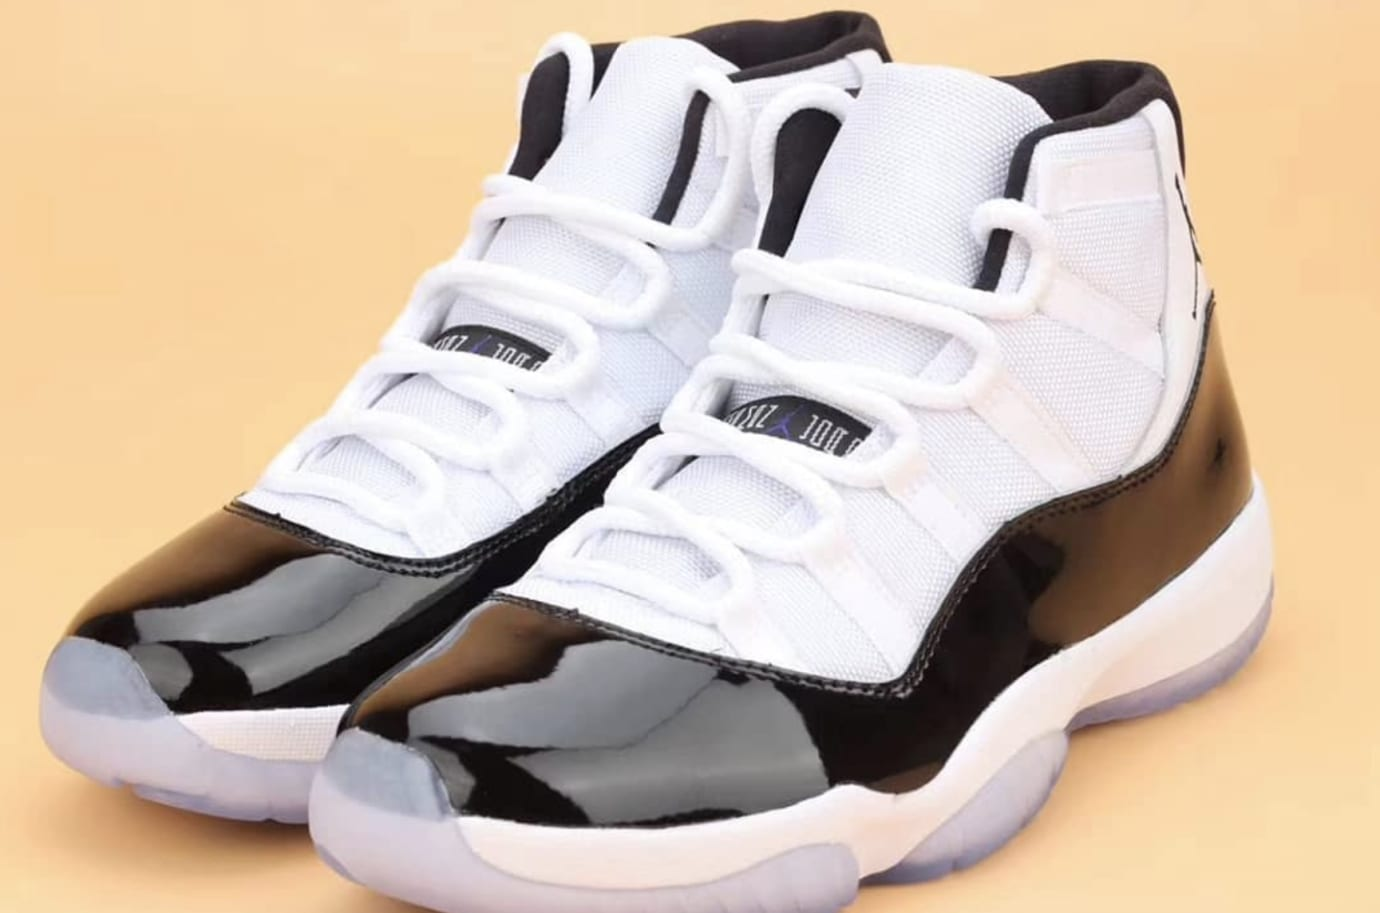 Concord\' Air Jordan 11 Returning In 2018 378037-100 | Sole Collector